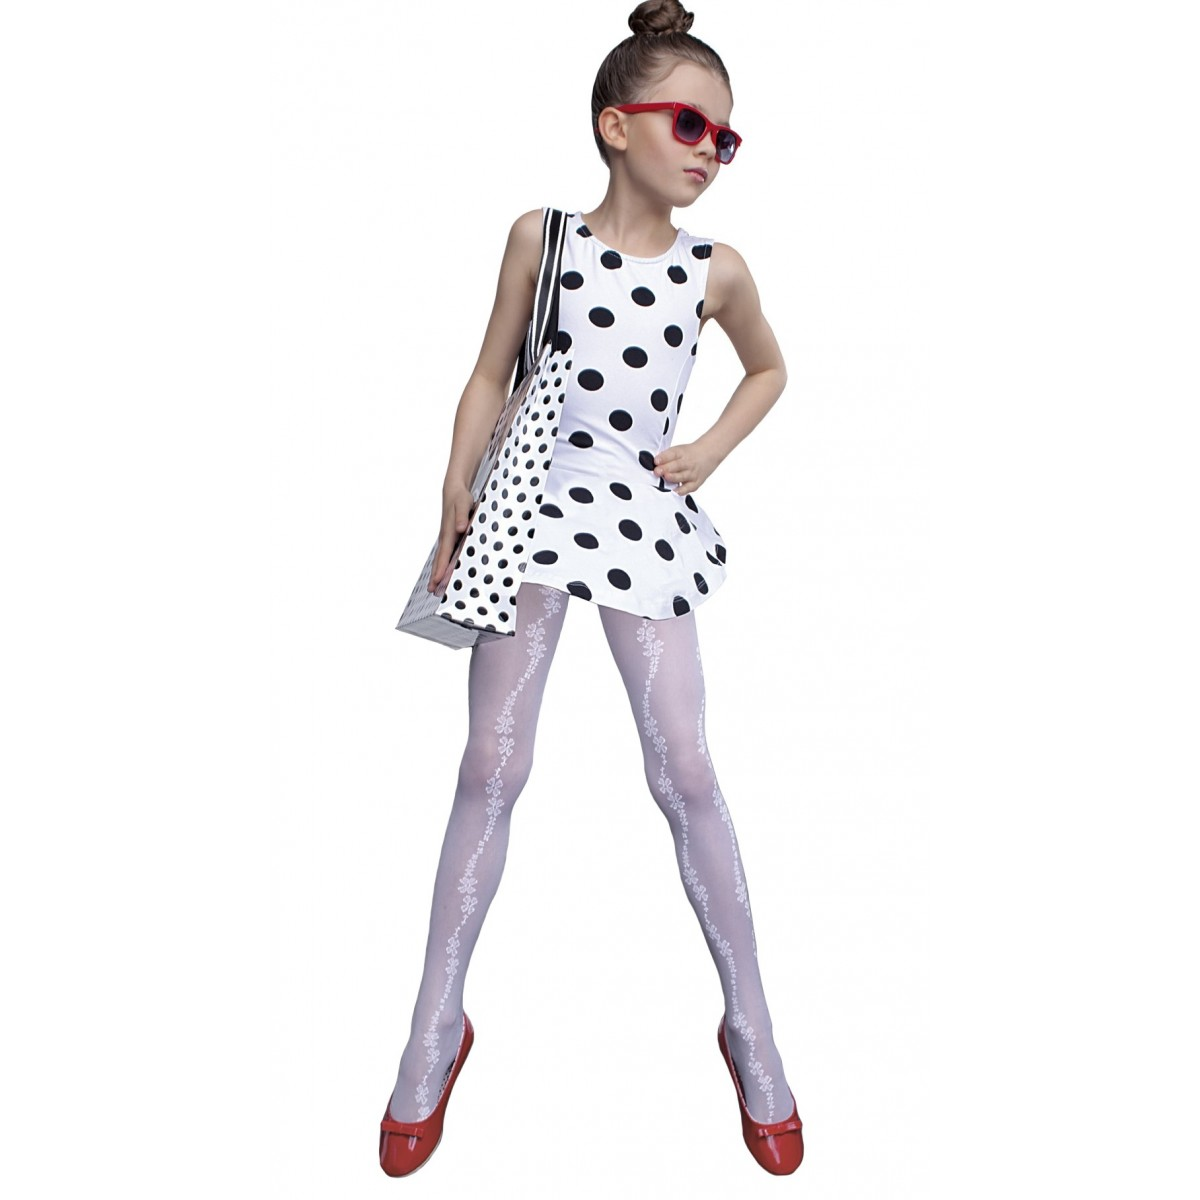 75a526d269988 Sissy Kids Tights 40 Den White Age 5 - 6 Fiore Aurellie-store ...